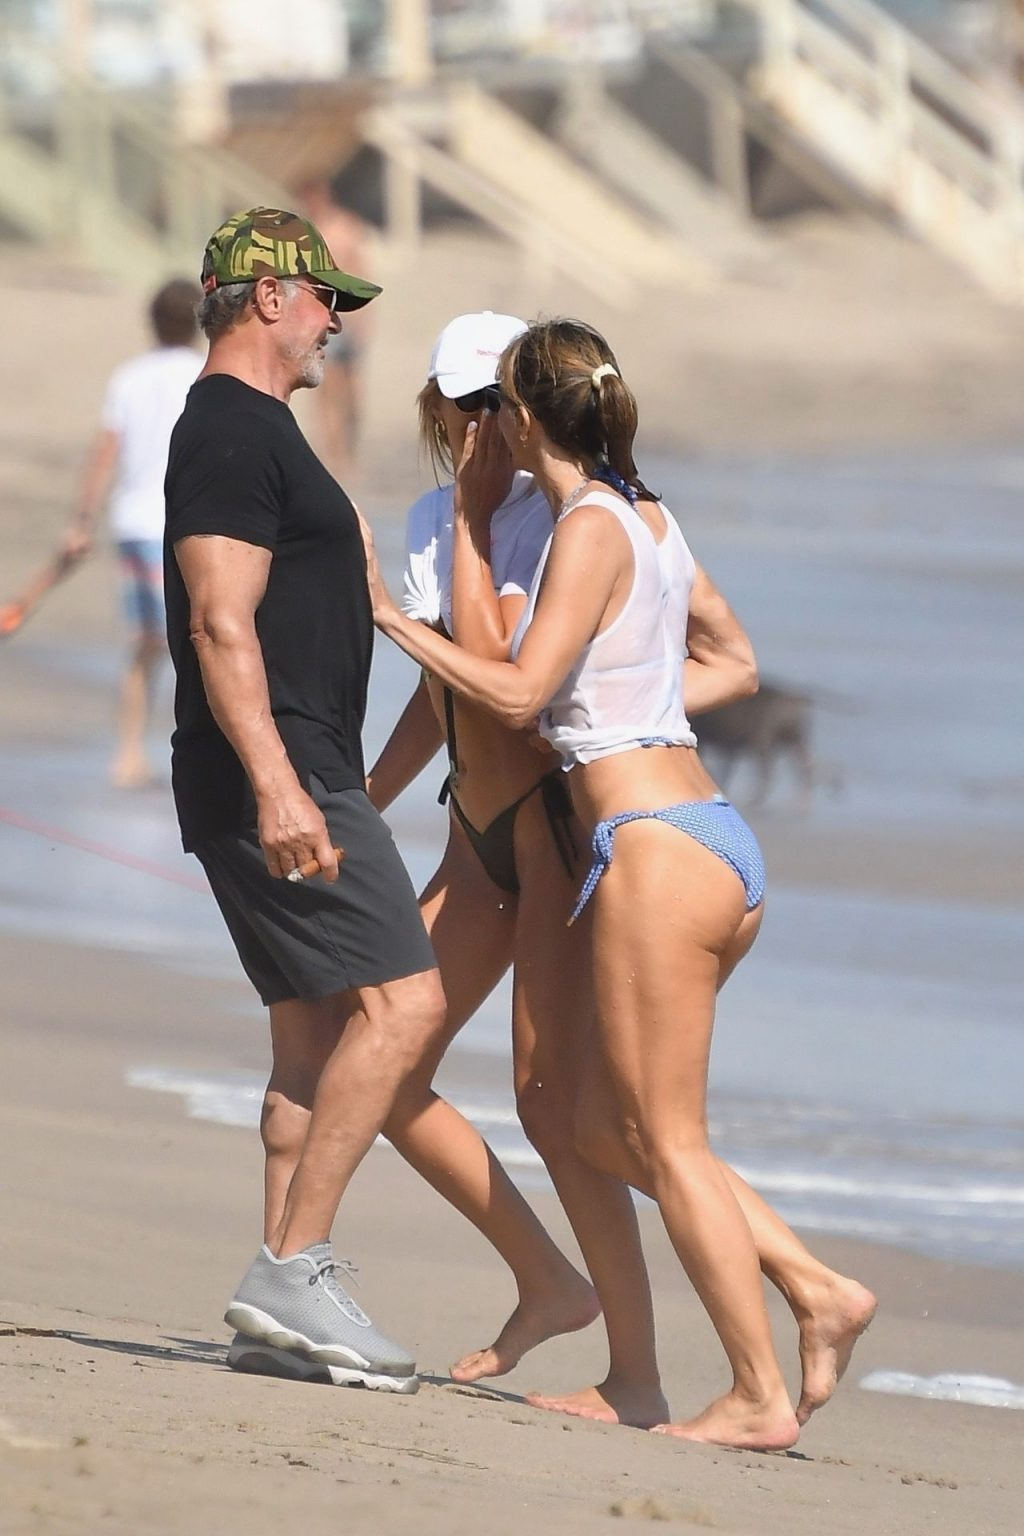 Jennifer Flavin, Sophia, Sistine & Scarlett Stallone Enjoy a Day on the Beach (113 Photos)